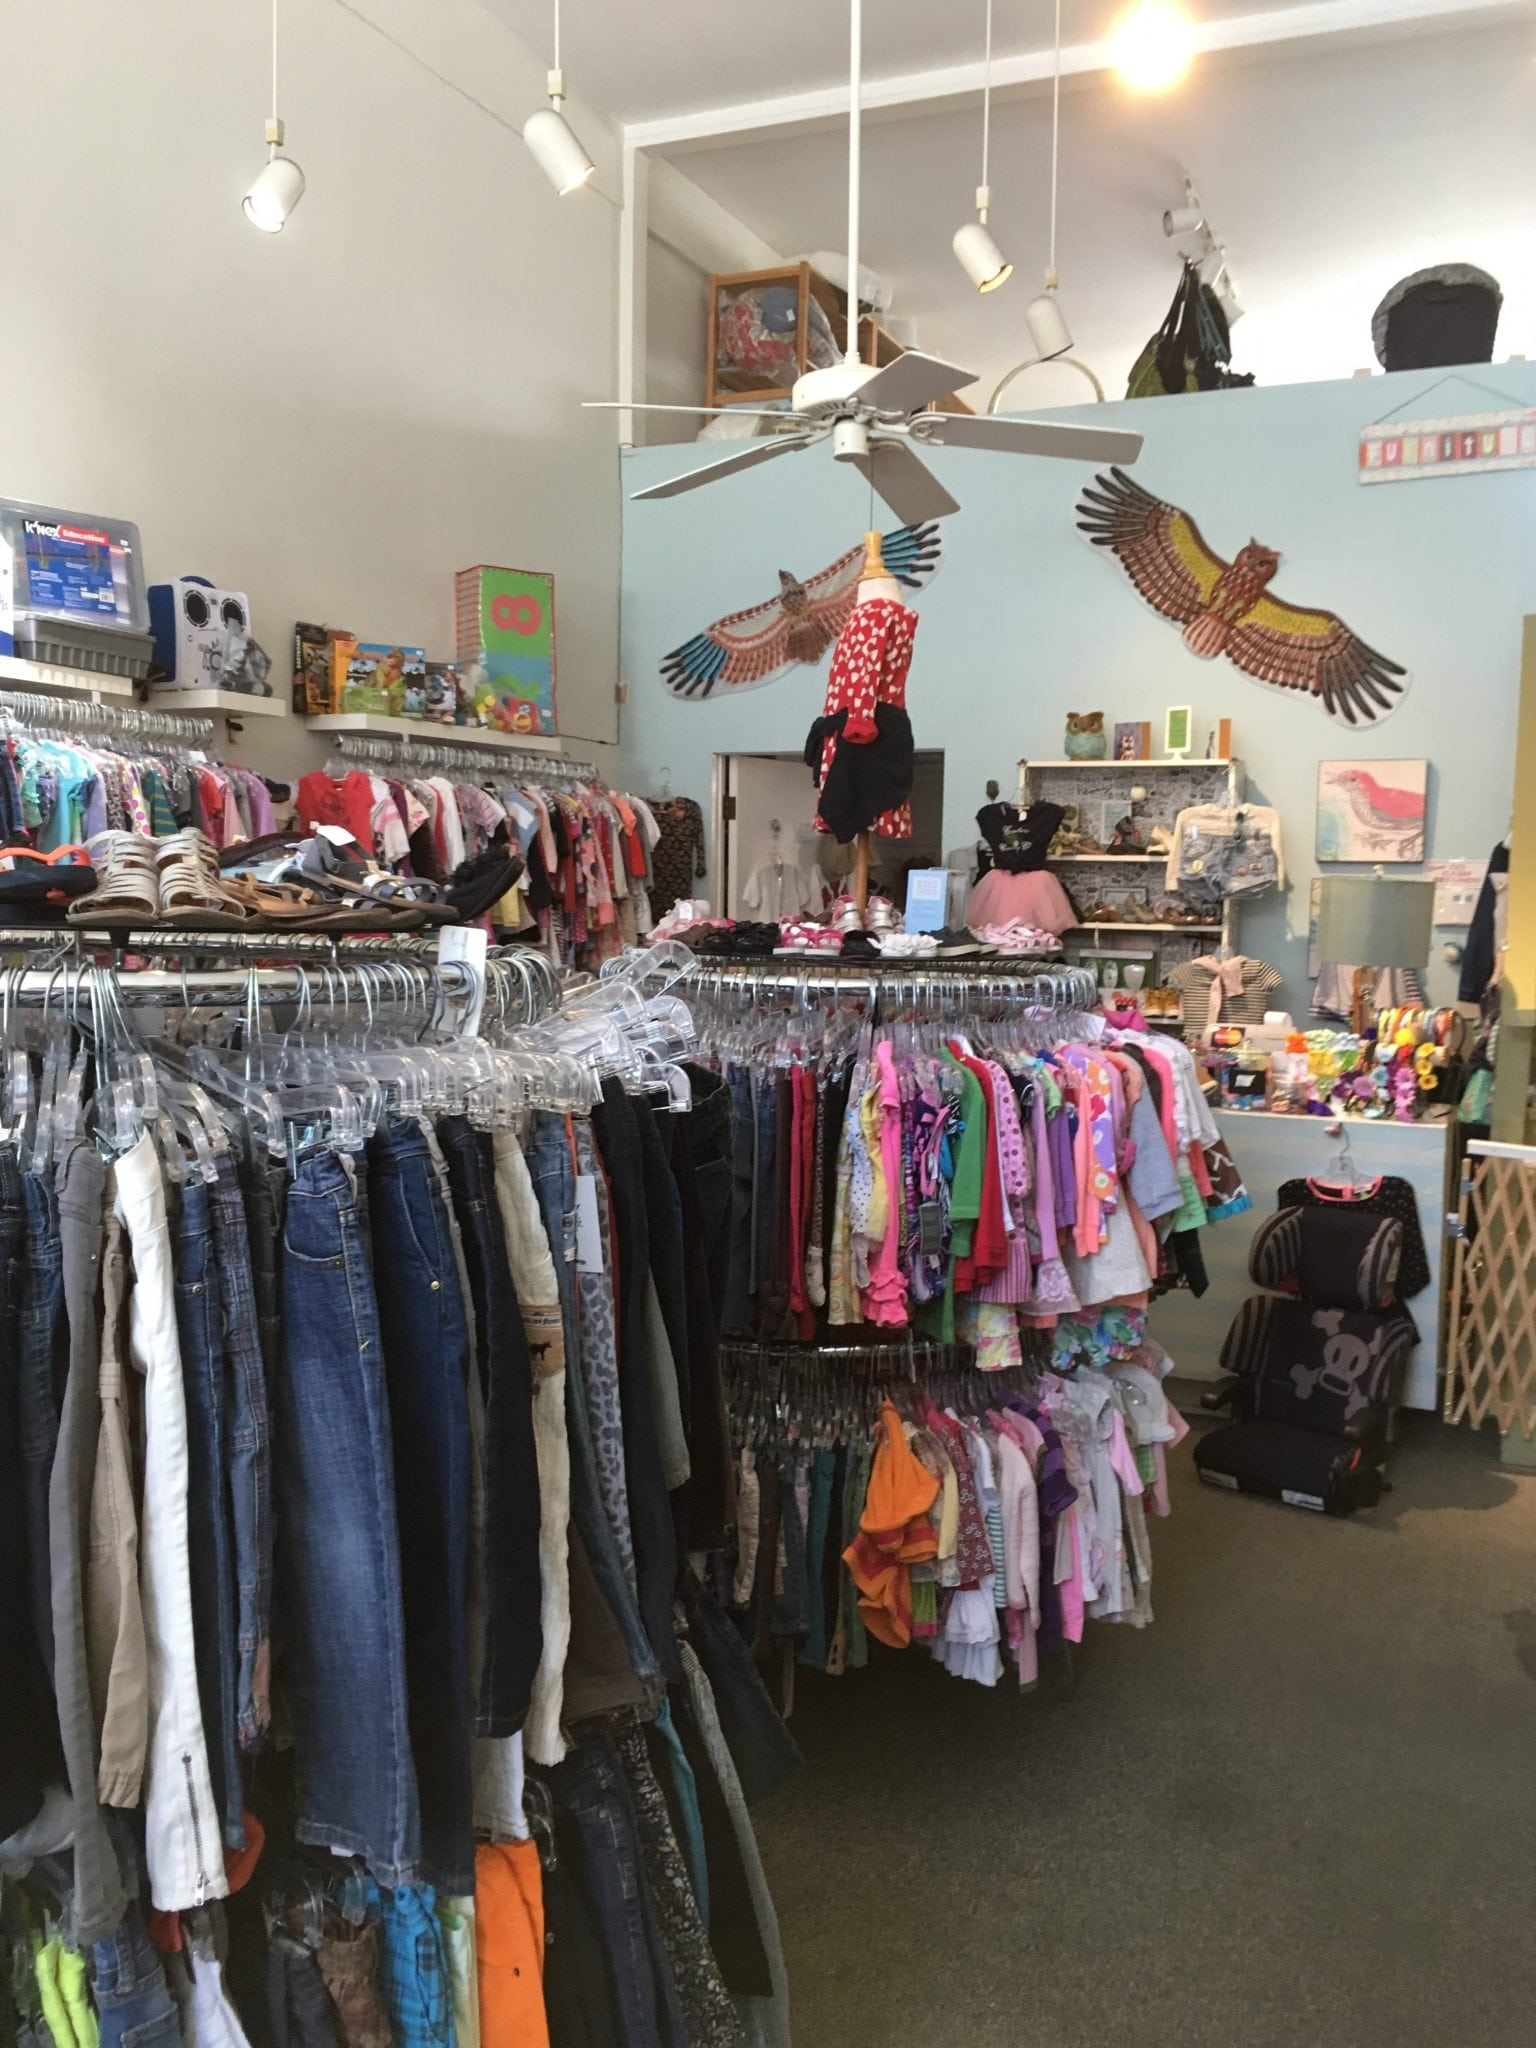 dbc3b34a8 Children's Resale Shops in L.A.: Where to Buy, Sell or Trade Kids ...